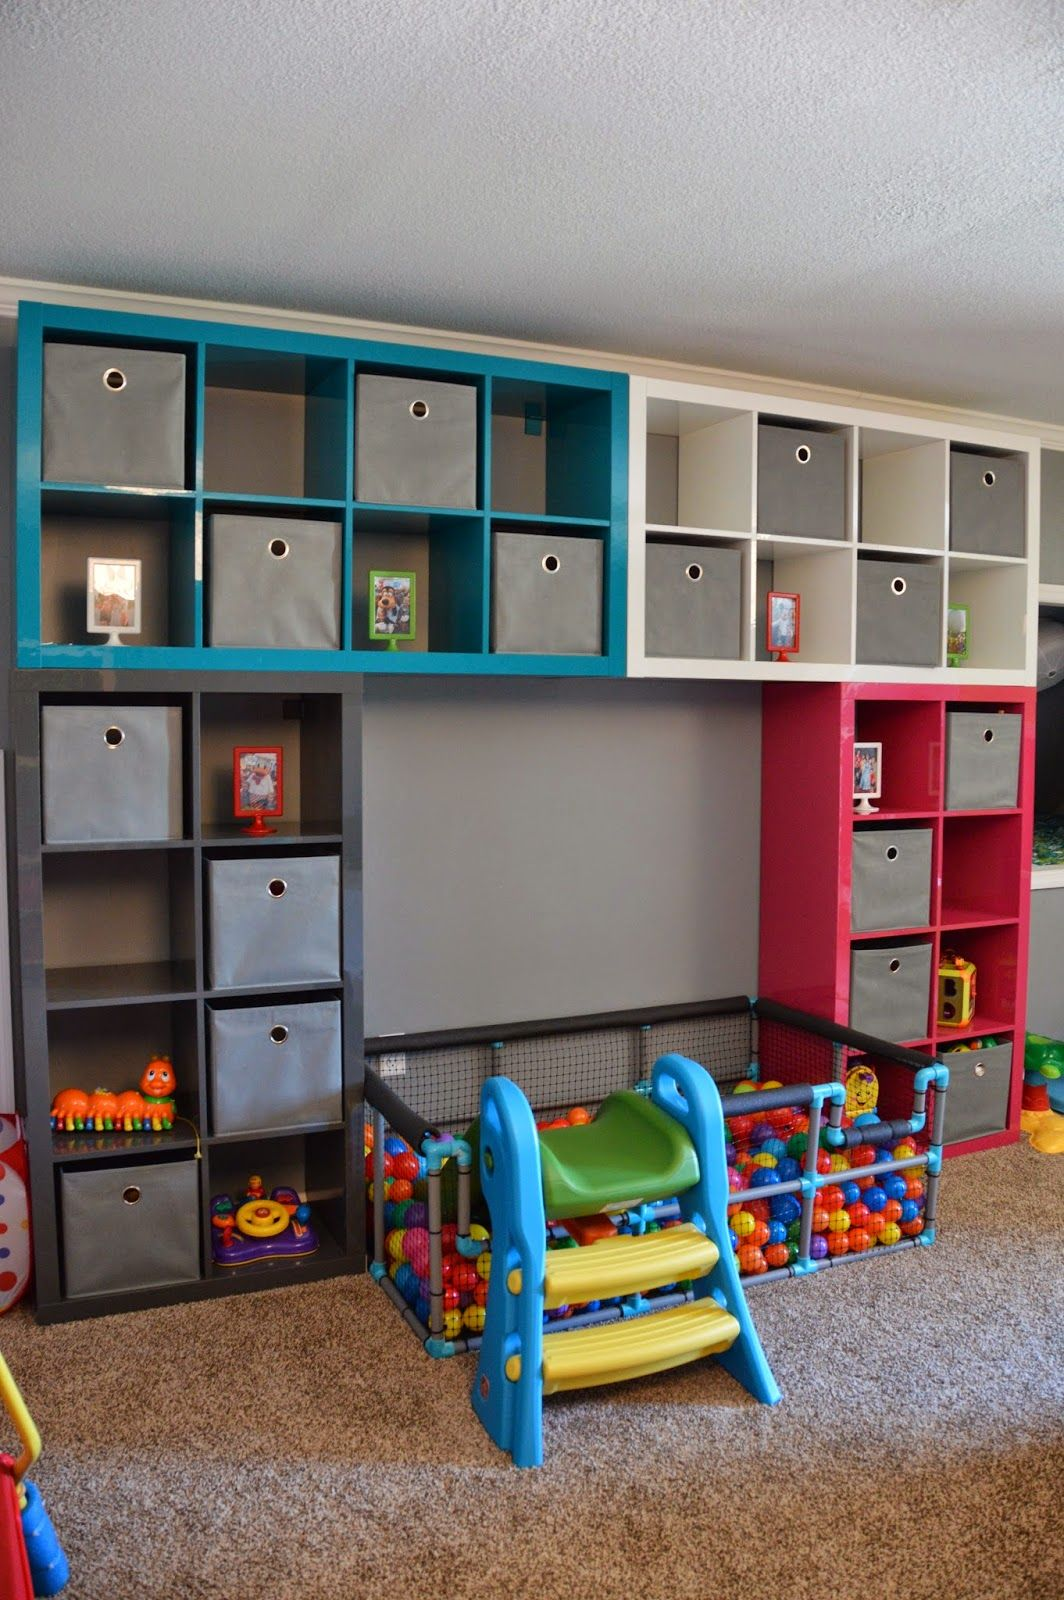 Tour Of Our Home ~ Playroom   For The Home   Toy Rooms, Playroom